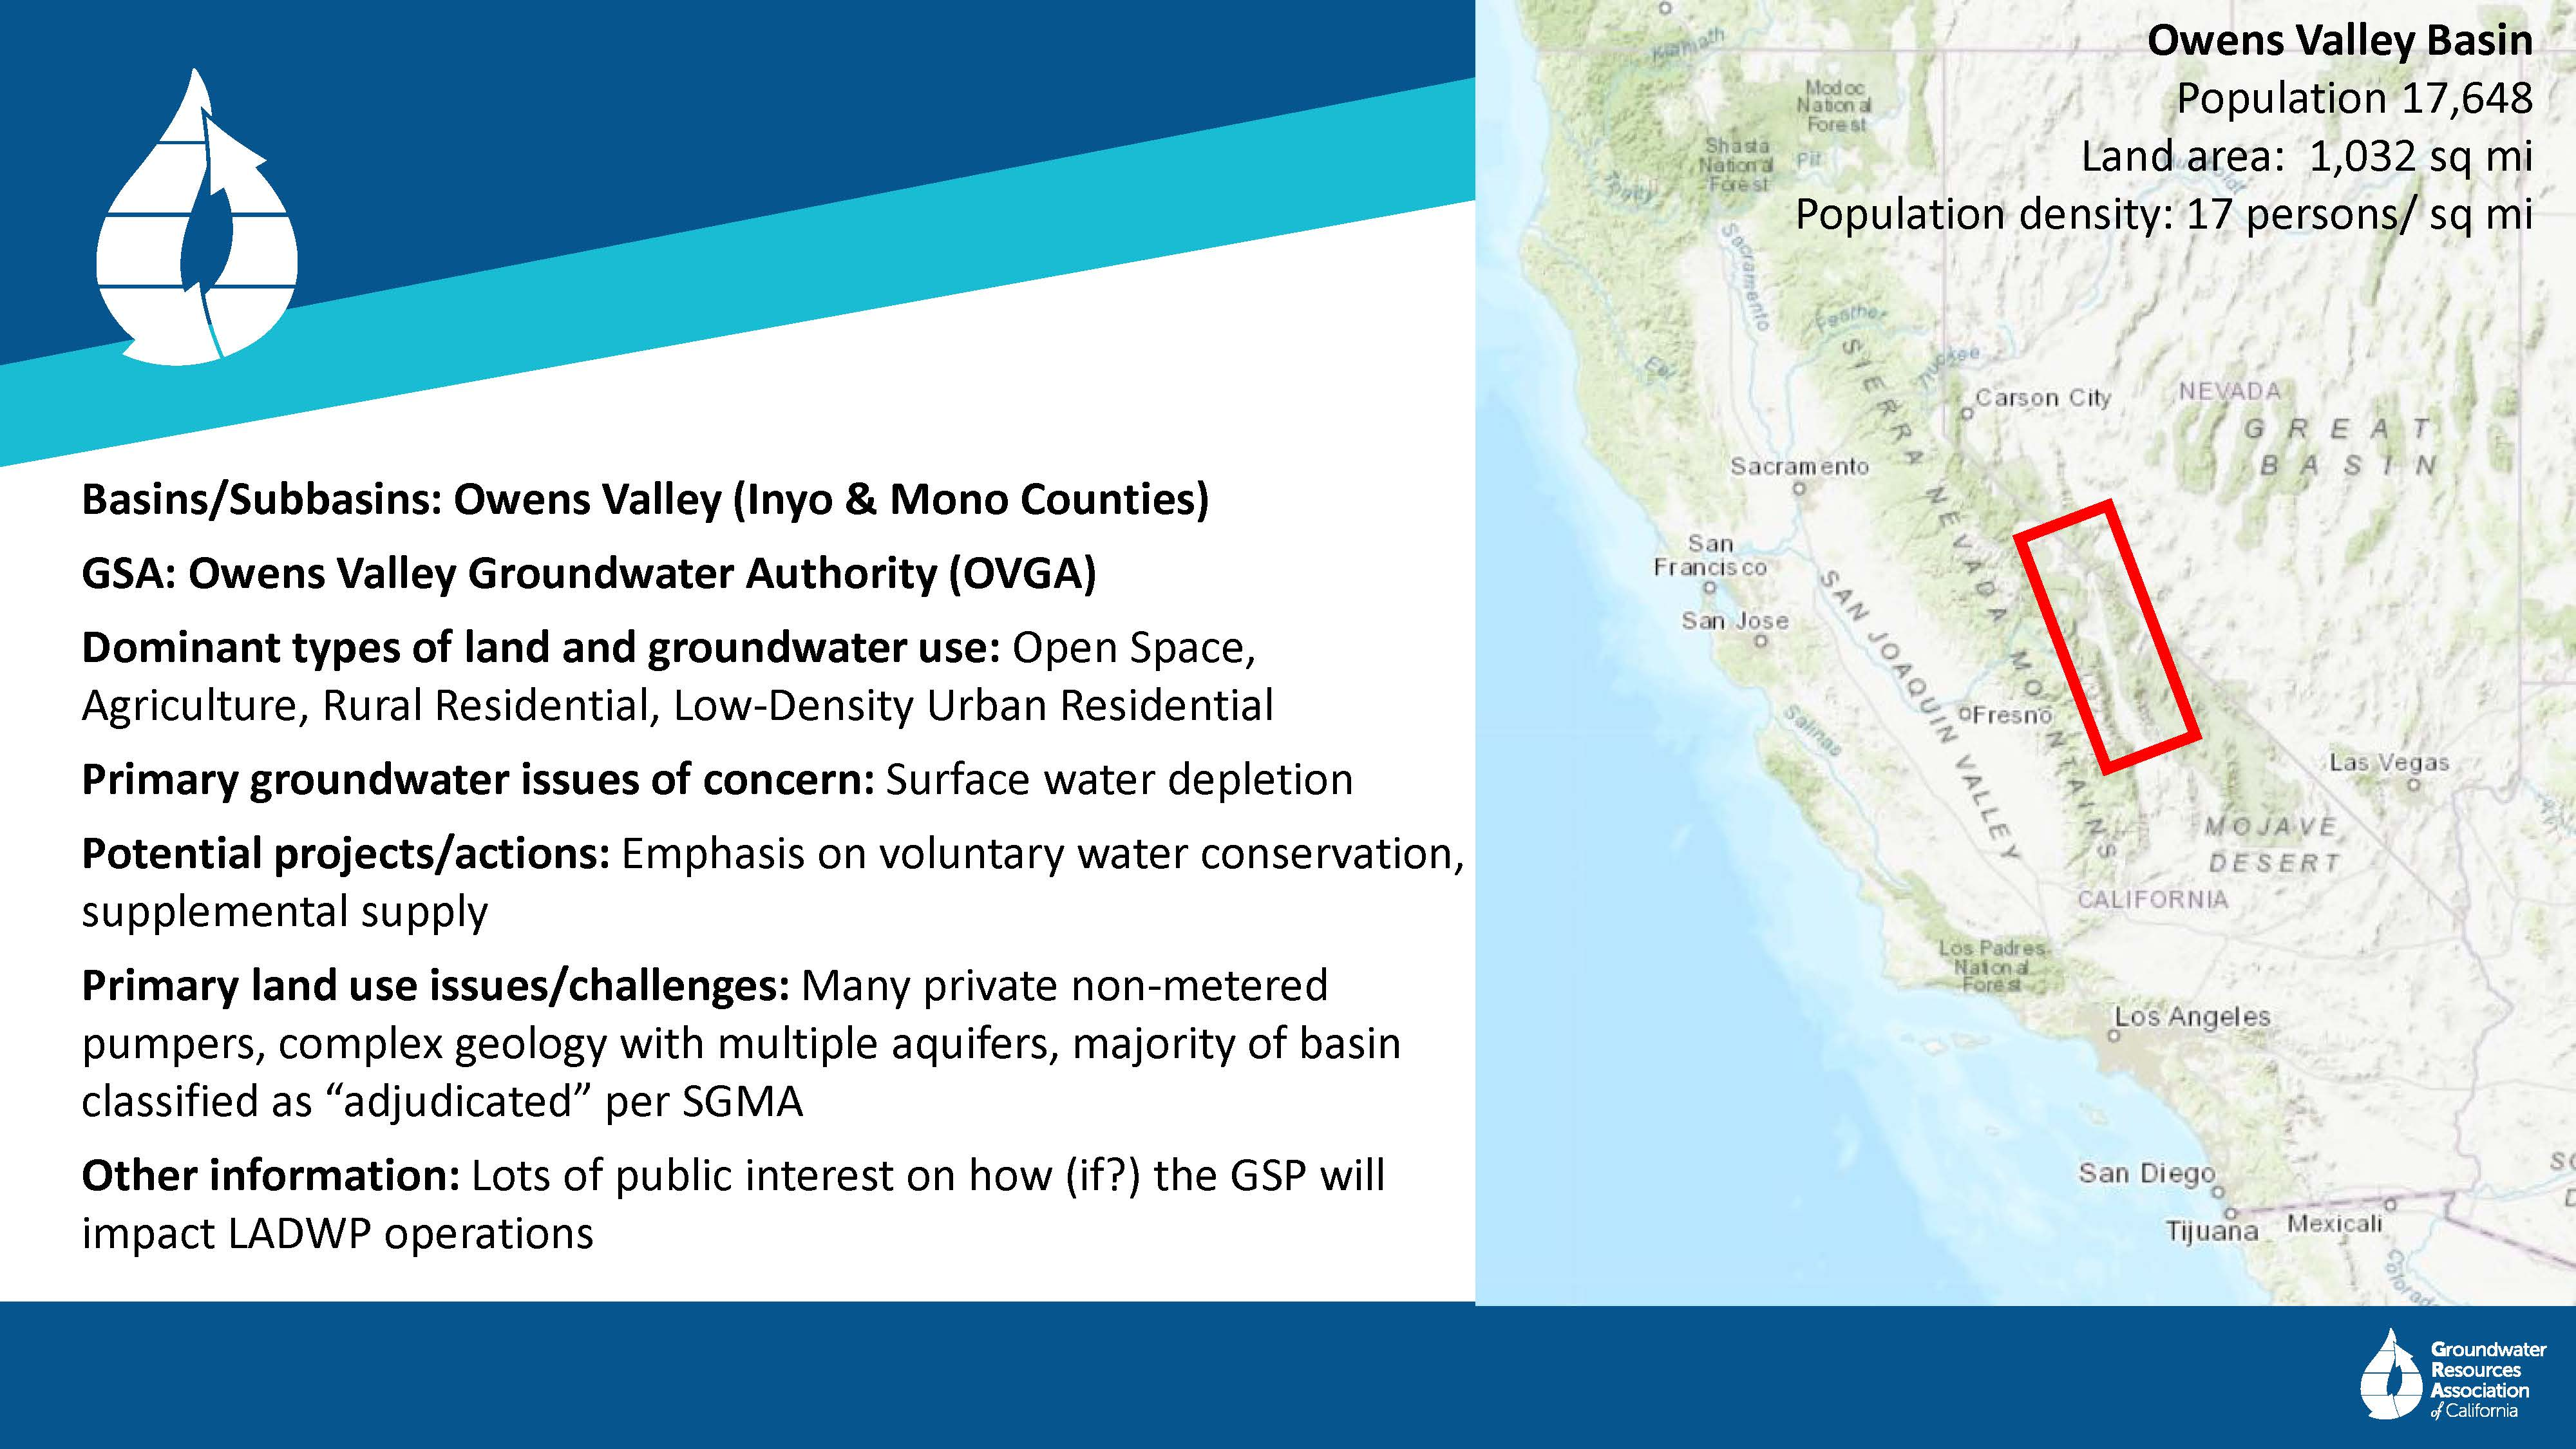 GSA SUMMIT: SGMA and Land Use Issues ~ MAVEN'S NOTEBOOK